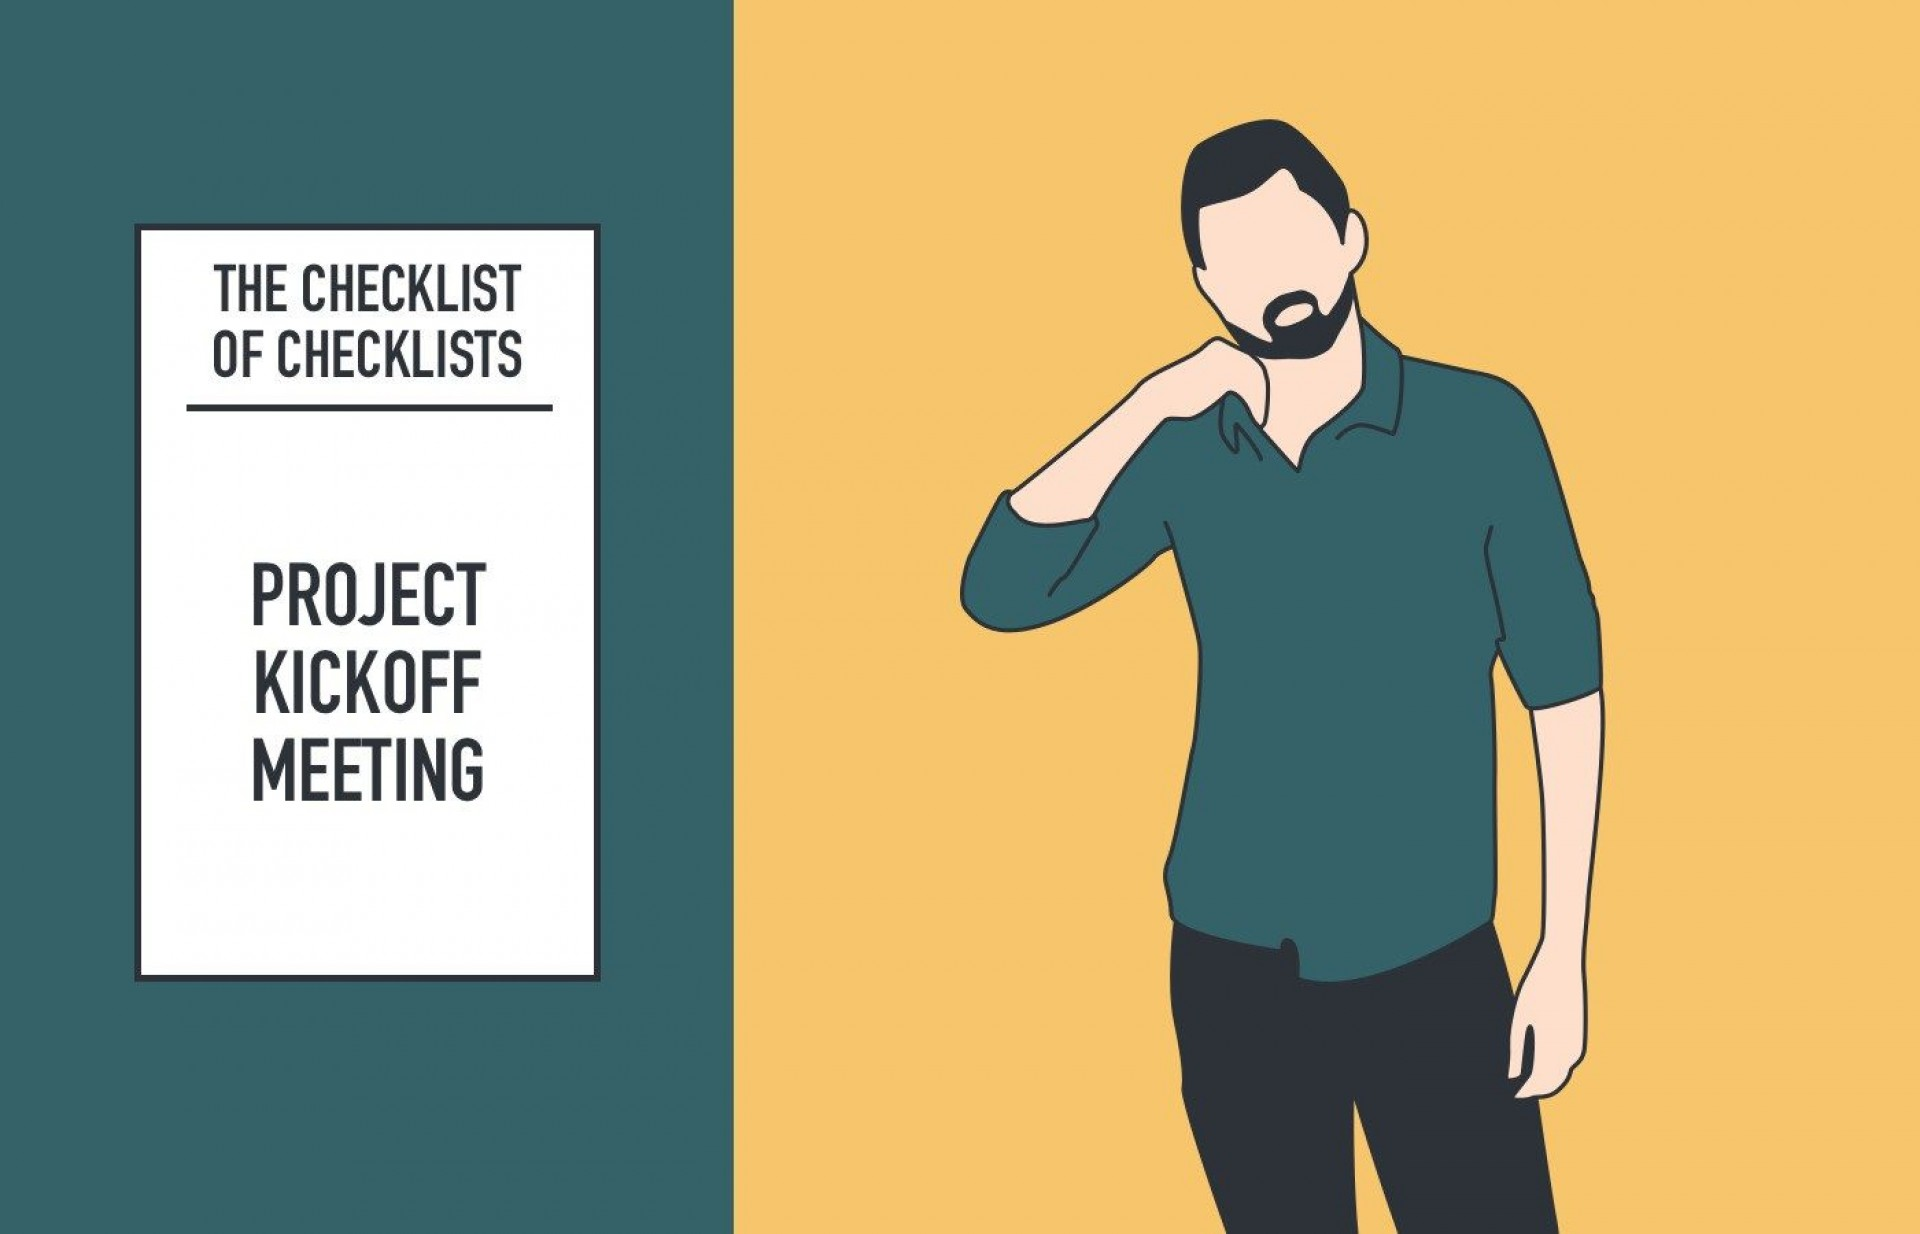 000 Singular Project Management Kickoff Meeting Template Image  Ppt1920